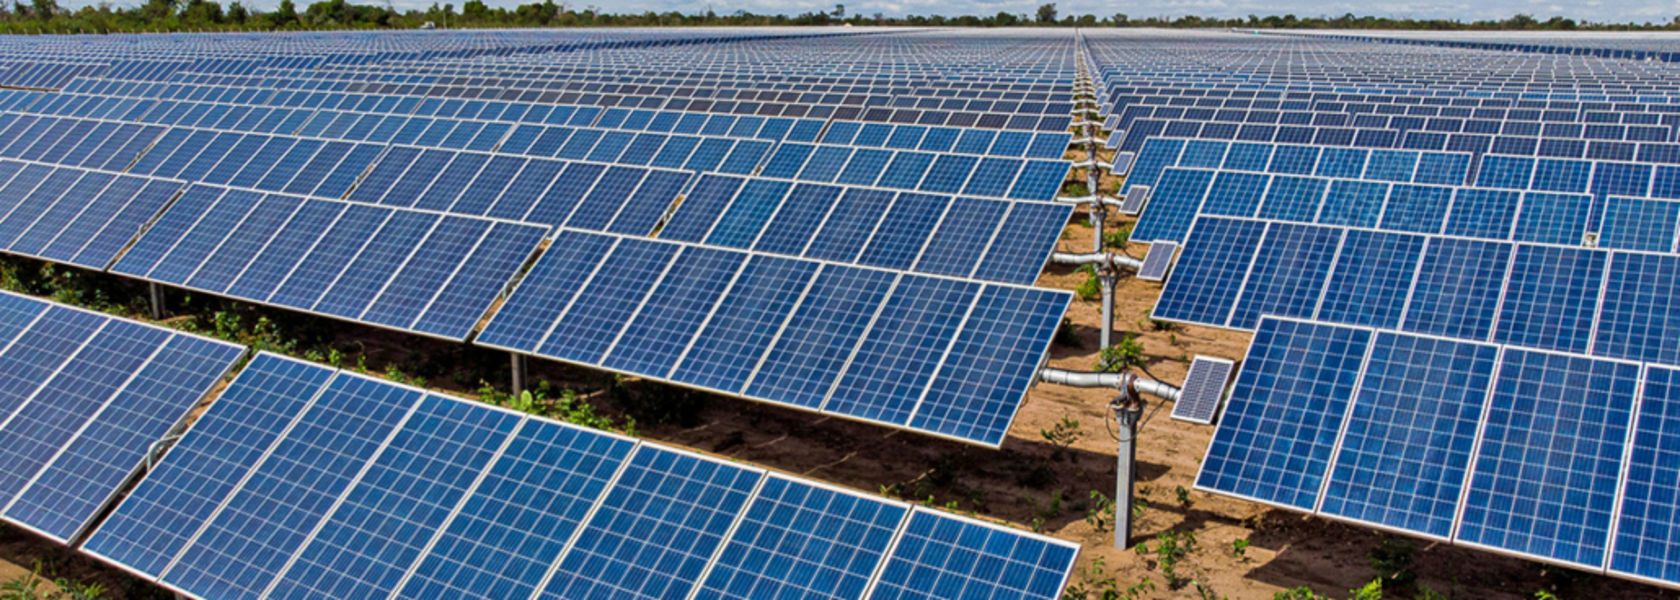 Solar power for Anglo American's Brazil operations